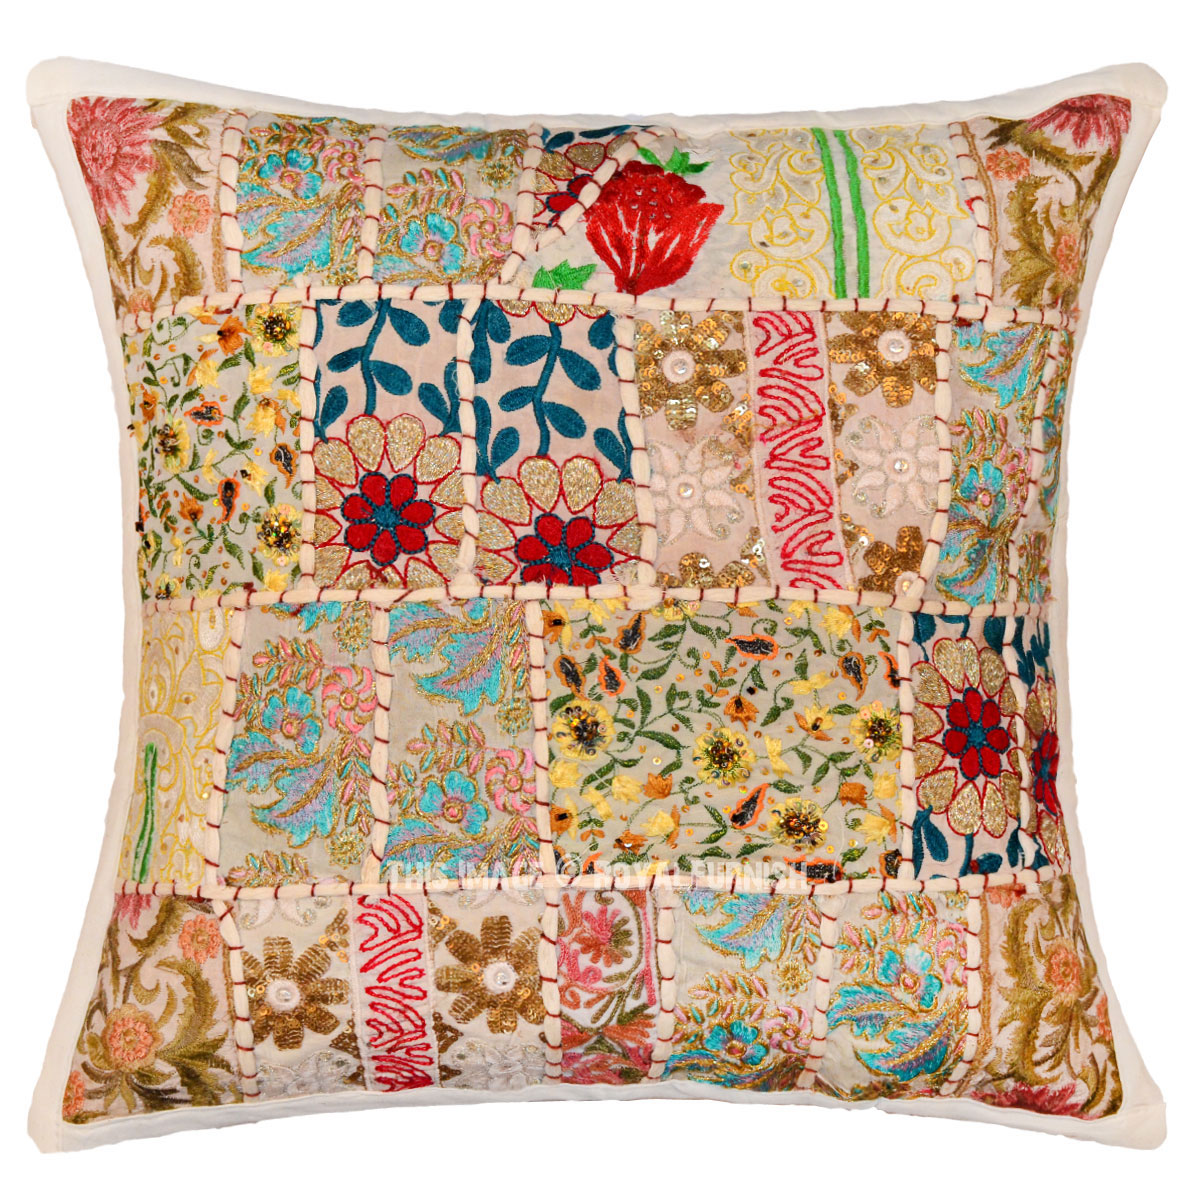 decorative throw pillows 16x16 white multi decorative patchwork throw pillow cover 10052